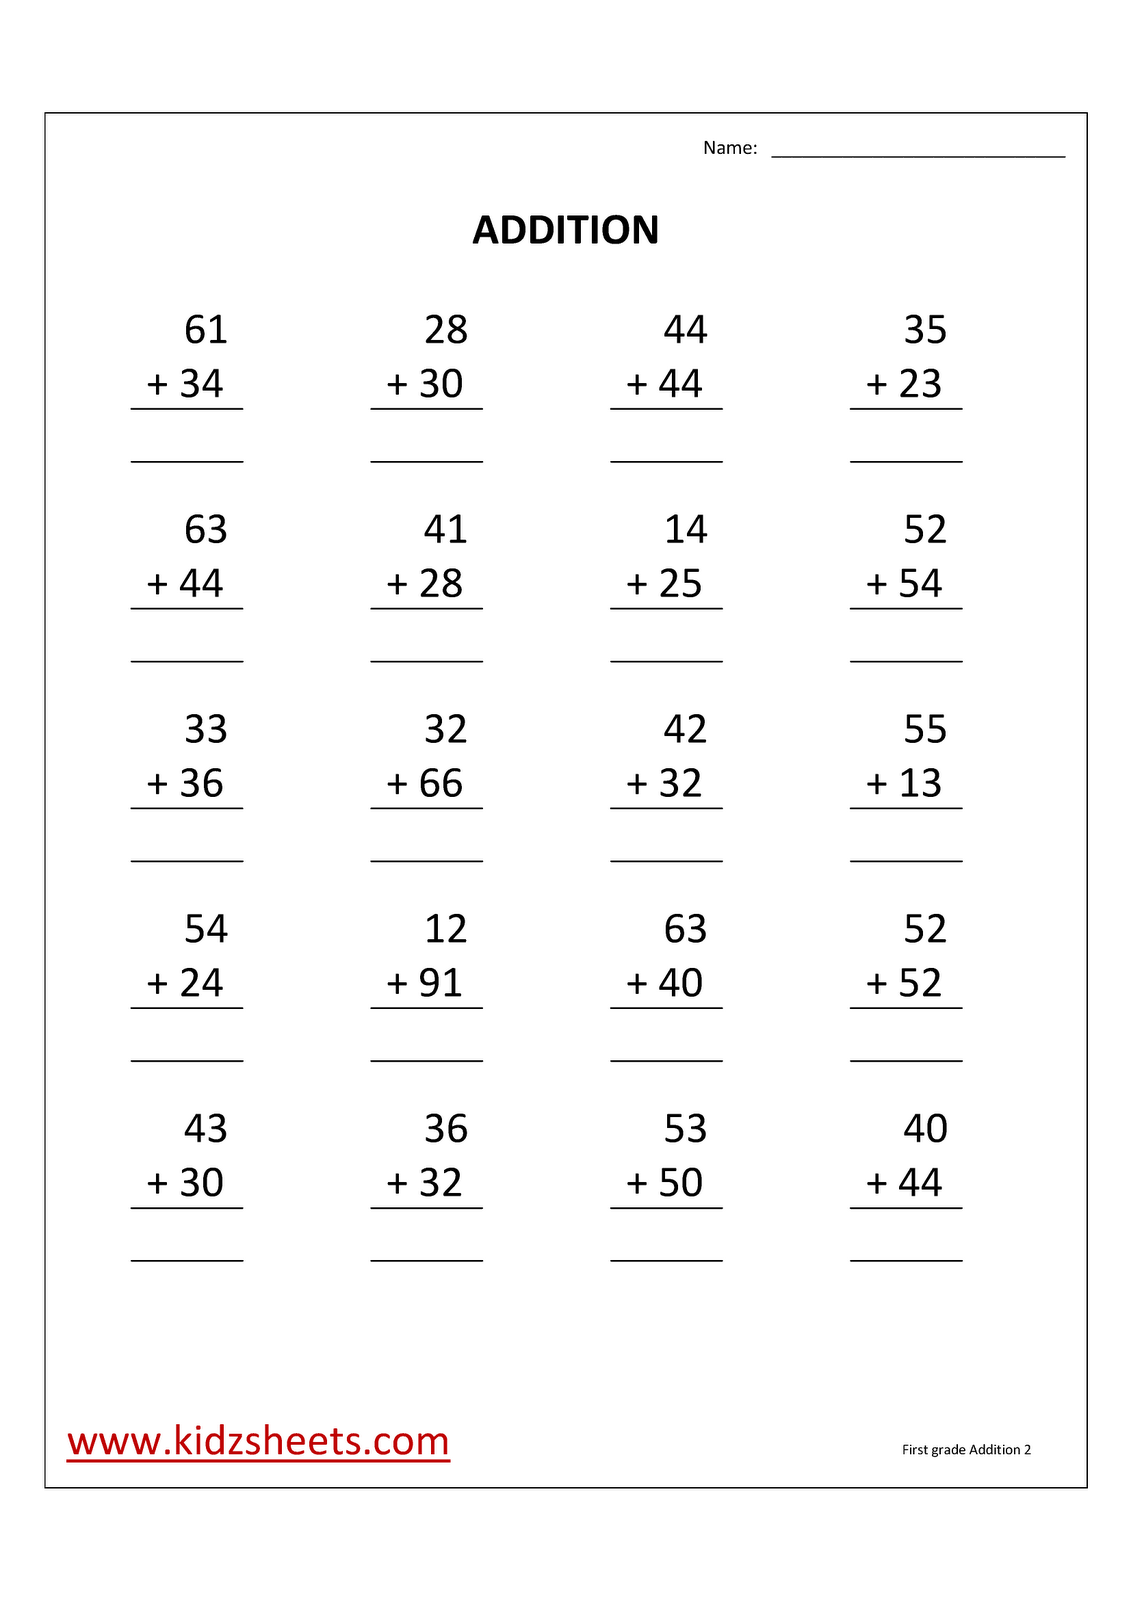 Addition Worksheet For 1st Grade Scalien – Free Addition Worksheets for 1st Grade